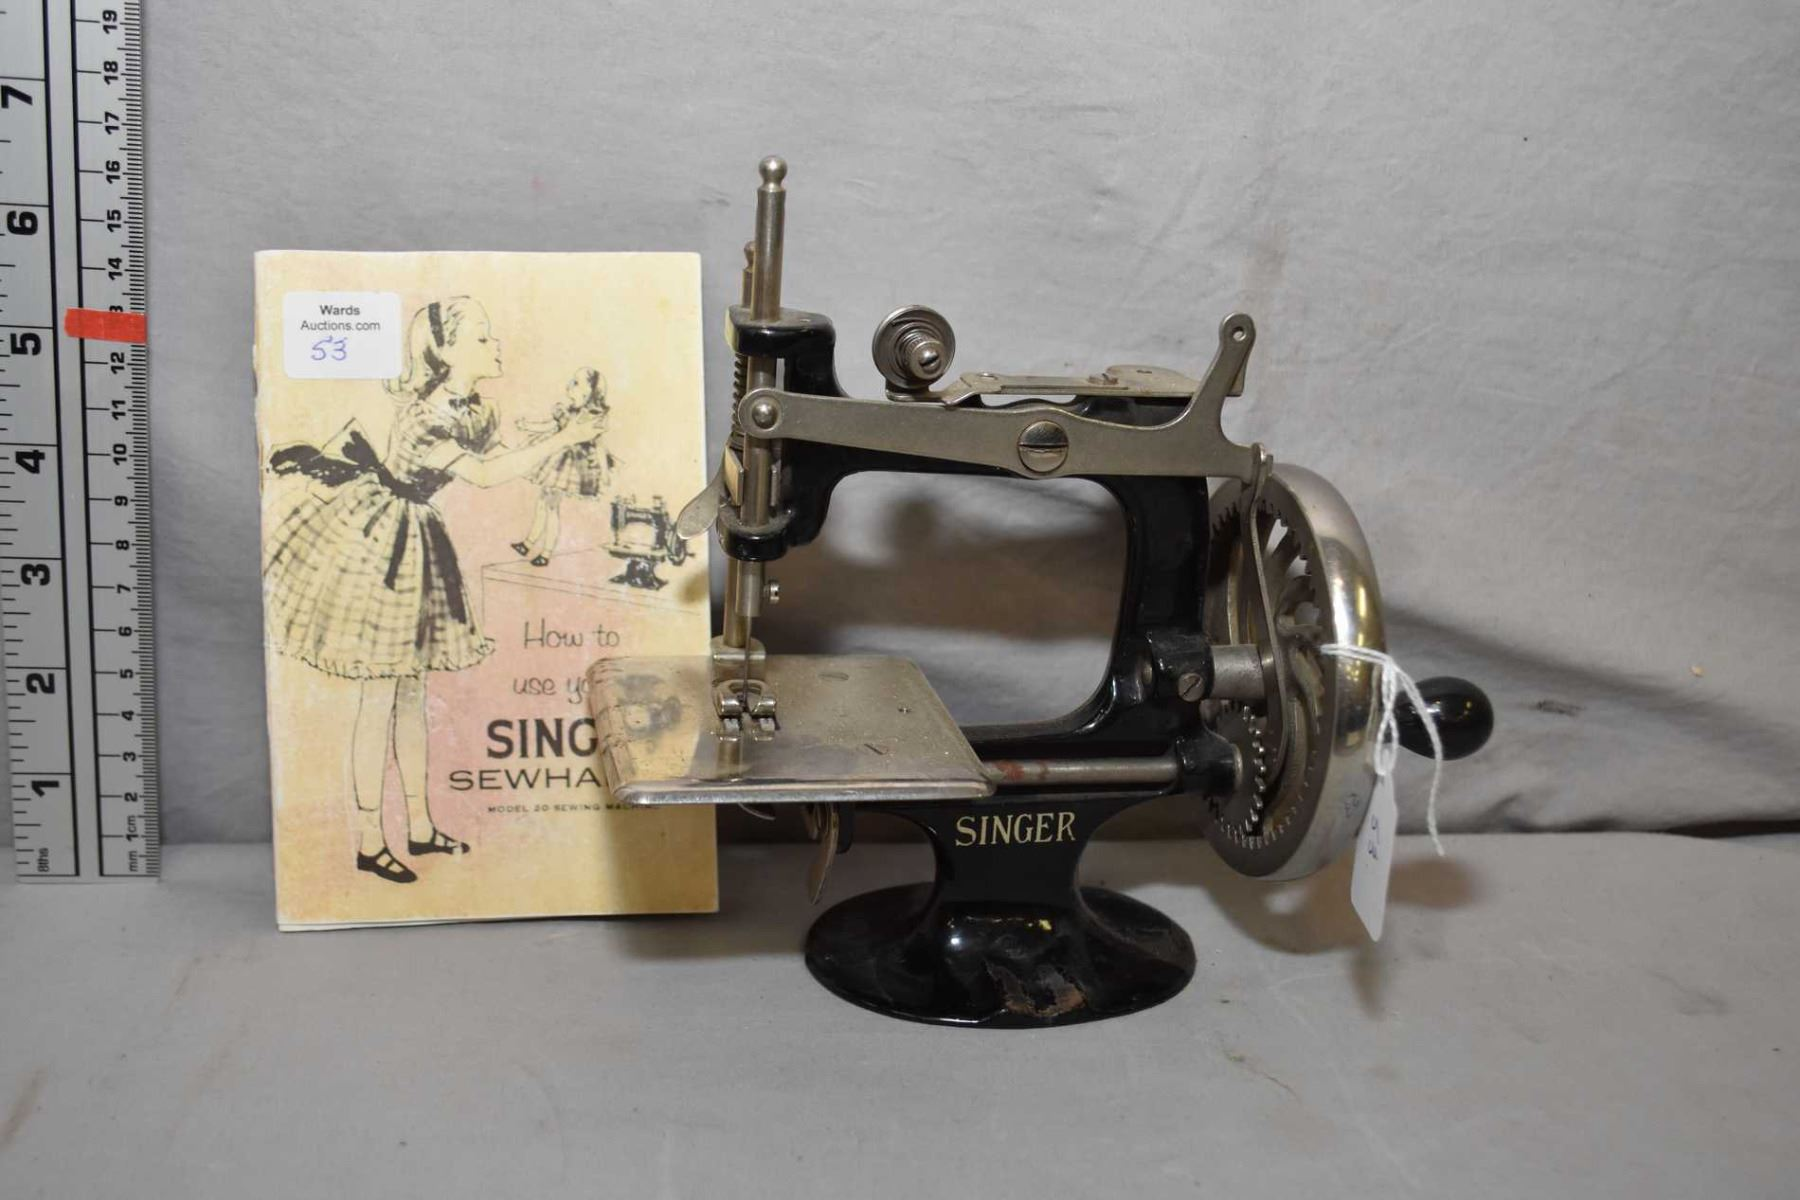 Printed singer 338 sewing machine manual (smm037).